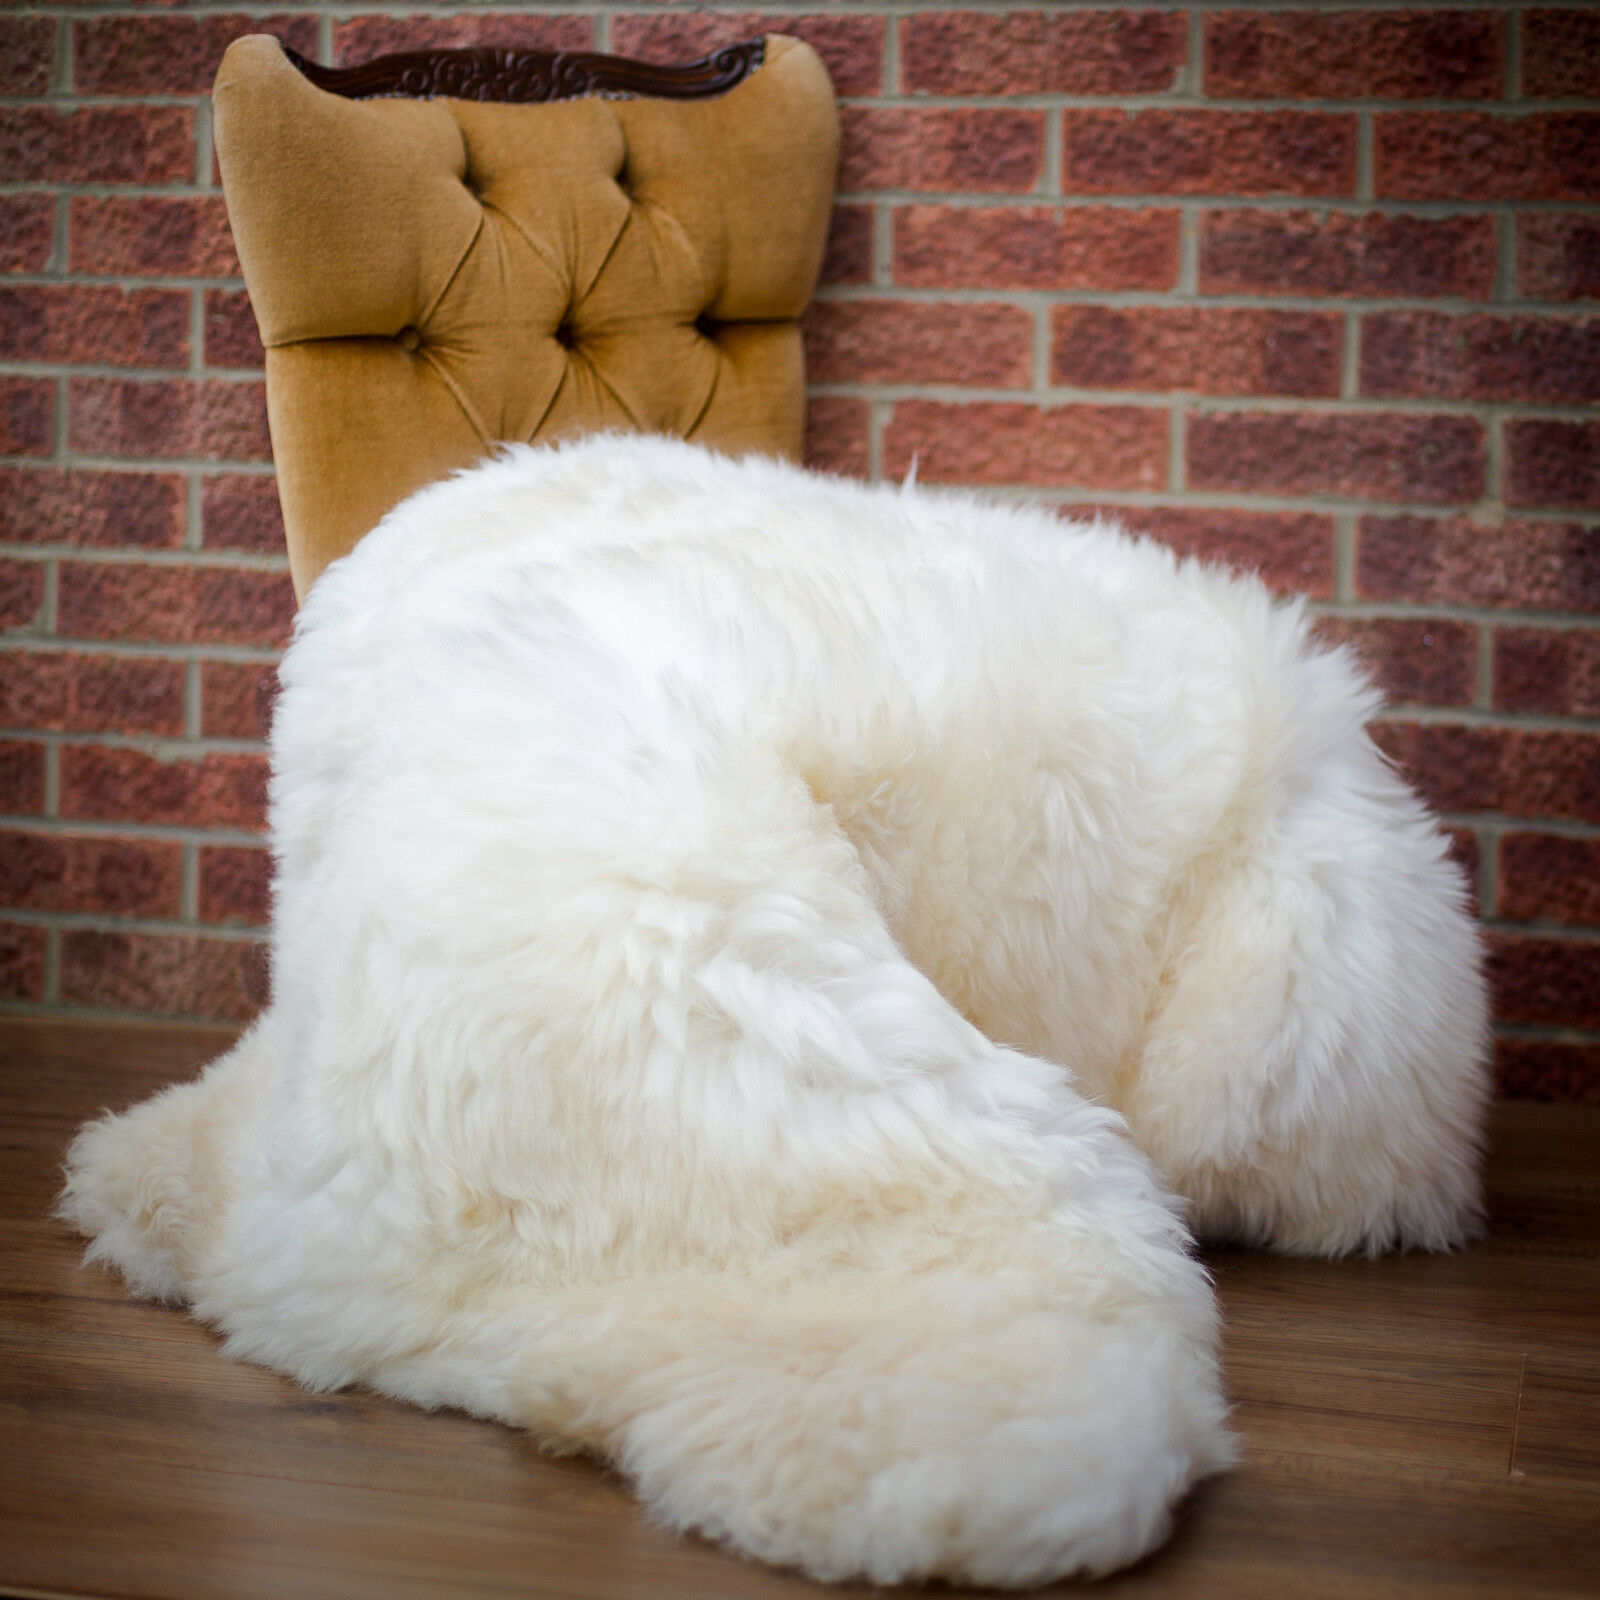 Natural Sheepskin Rug Large. Large. Large. Very fluffy and soft. Shaggy sheep. Giant Größe c41770